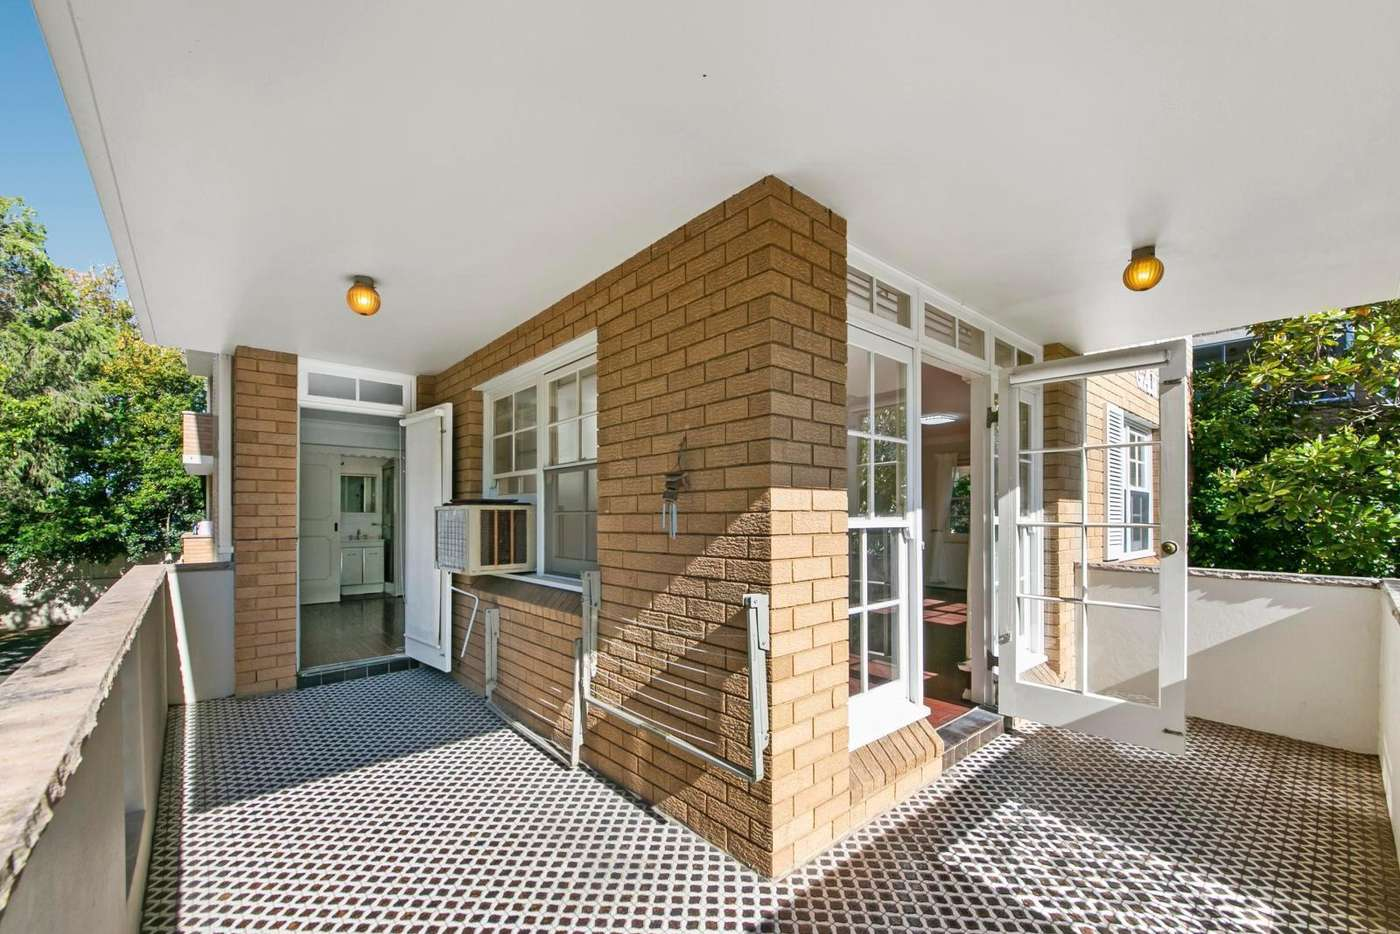 Seventh view of Homely apartment listing, 16/58 Oxford Street, Epping NSW 2121